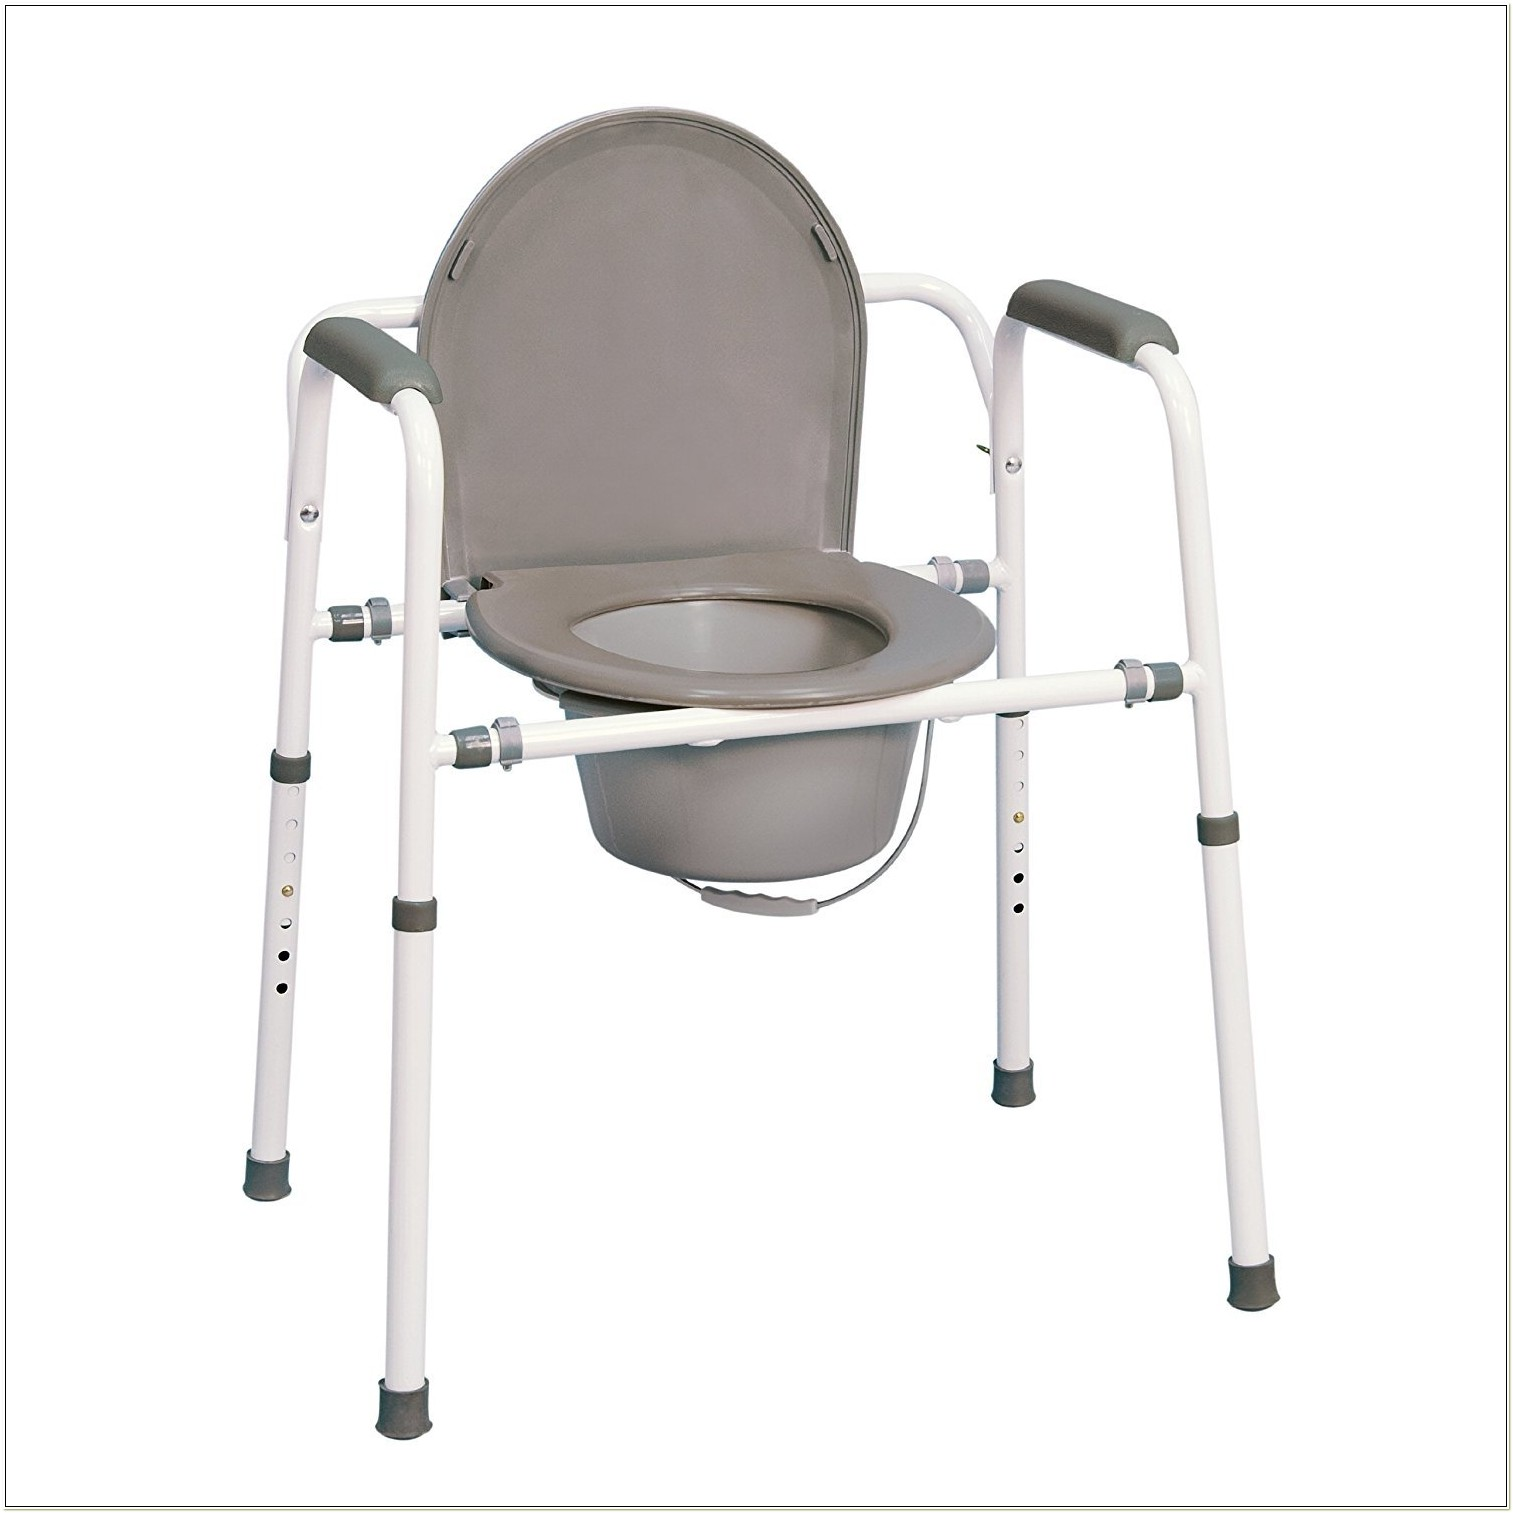 Portable Toilet Chair For Adults